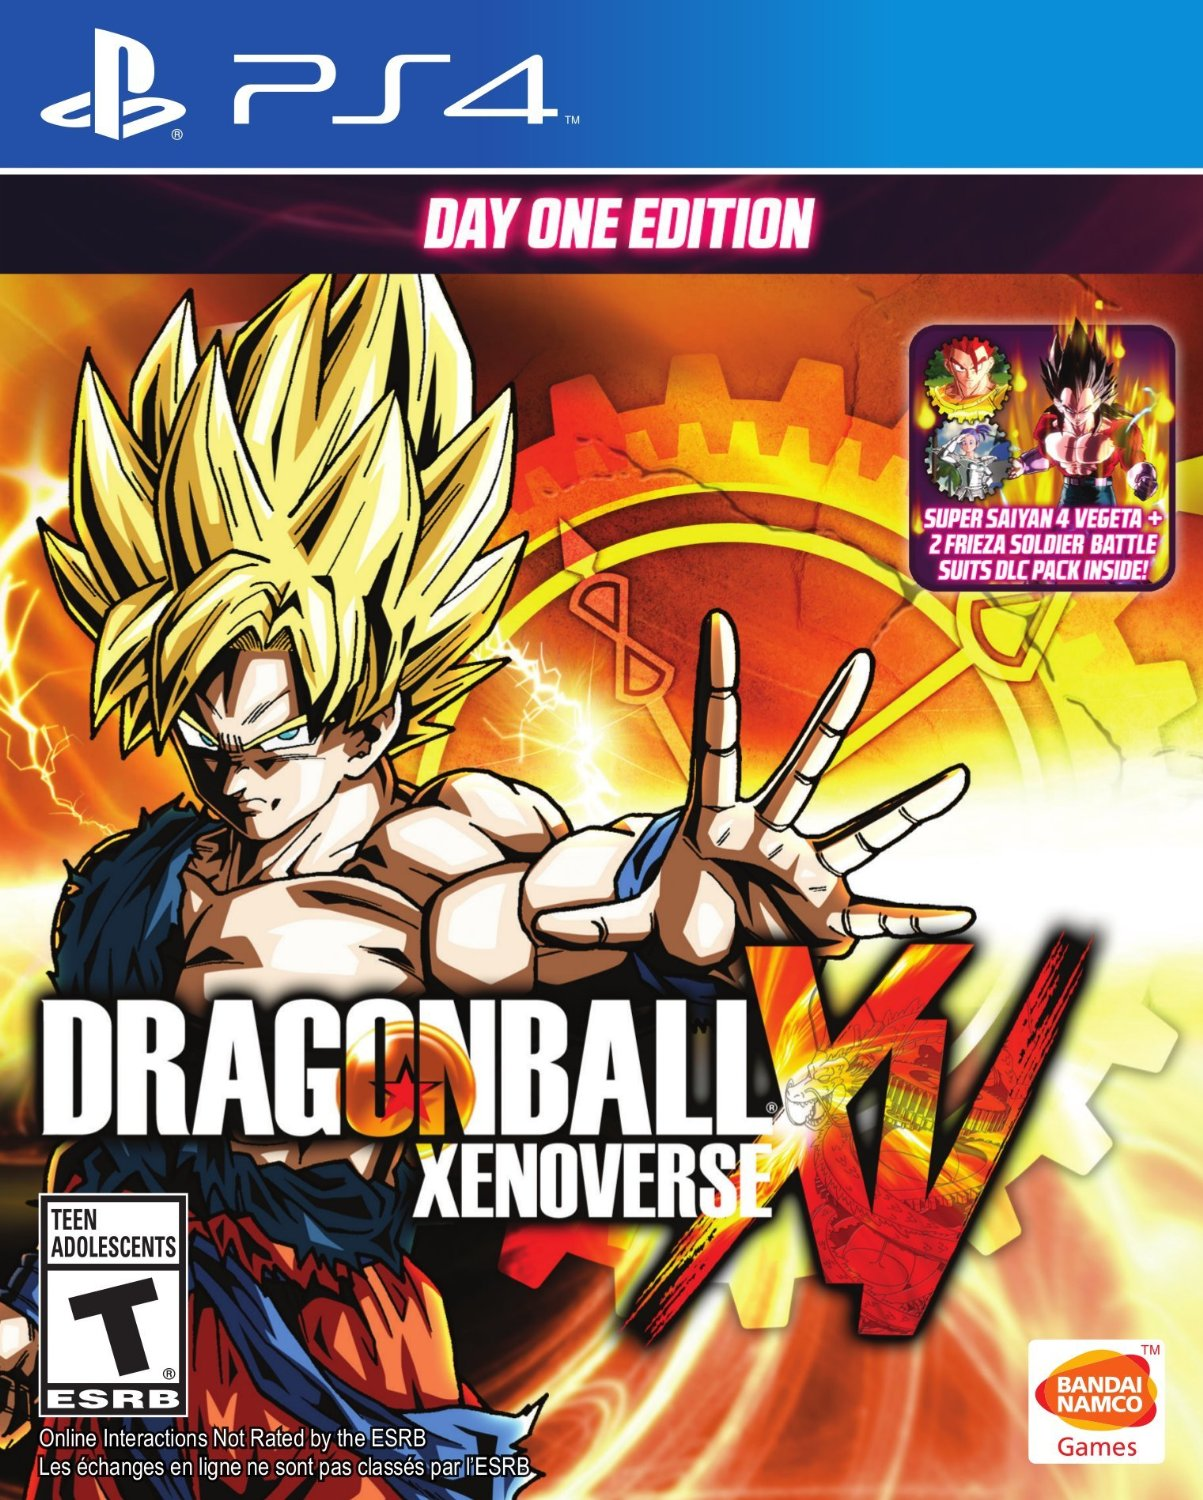 PS4 Dragon Ball Xenoverse Português e Español (PlayStation 4)